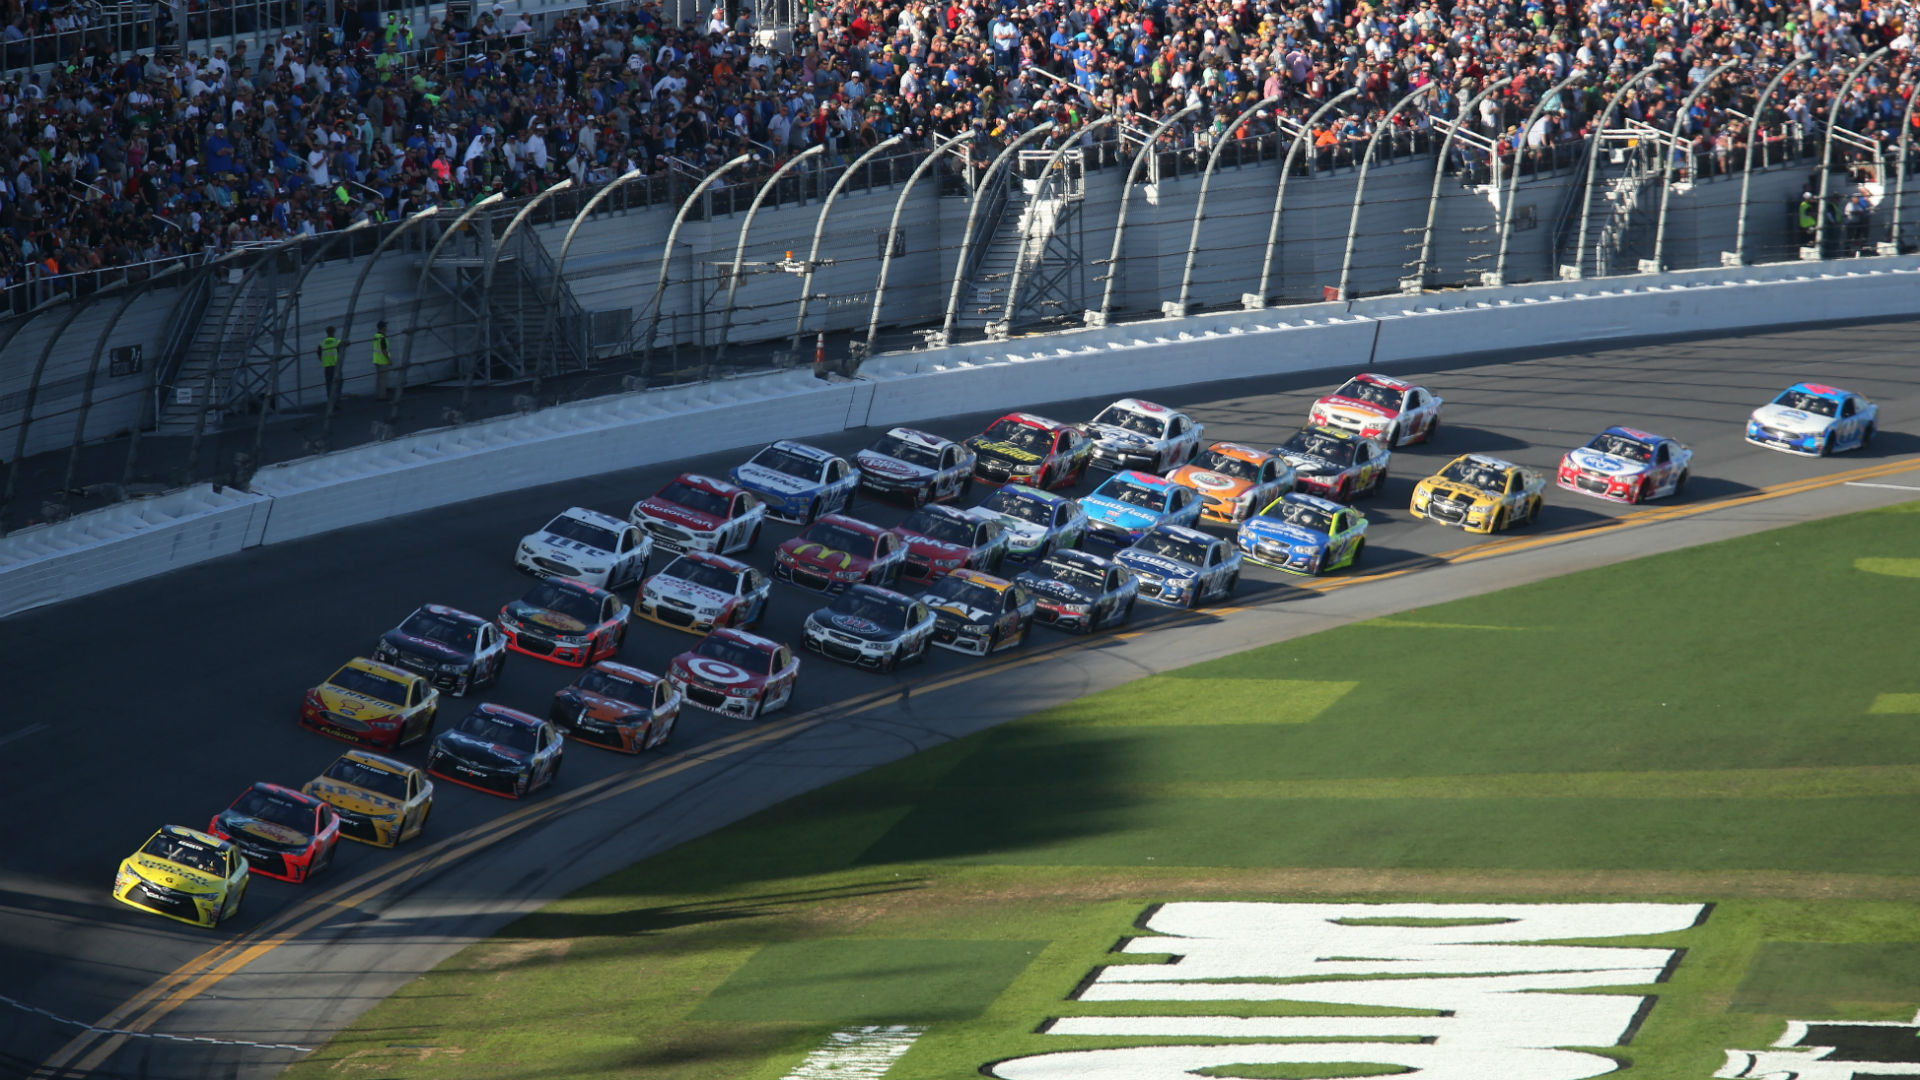 Daytona 500 purse, payout breakdown: How much prize money will the winner make in 2021?